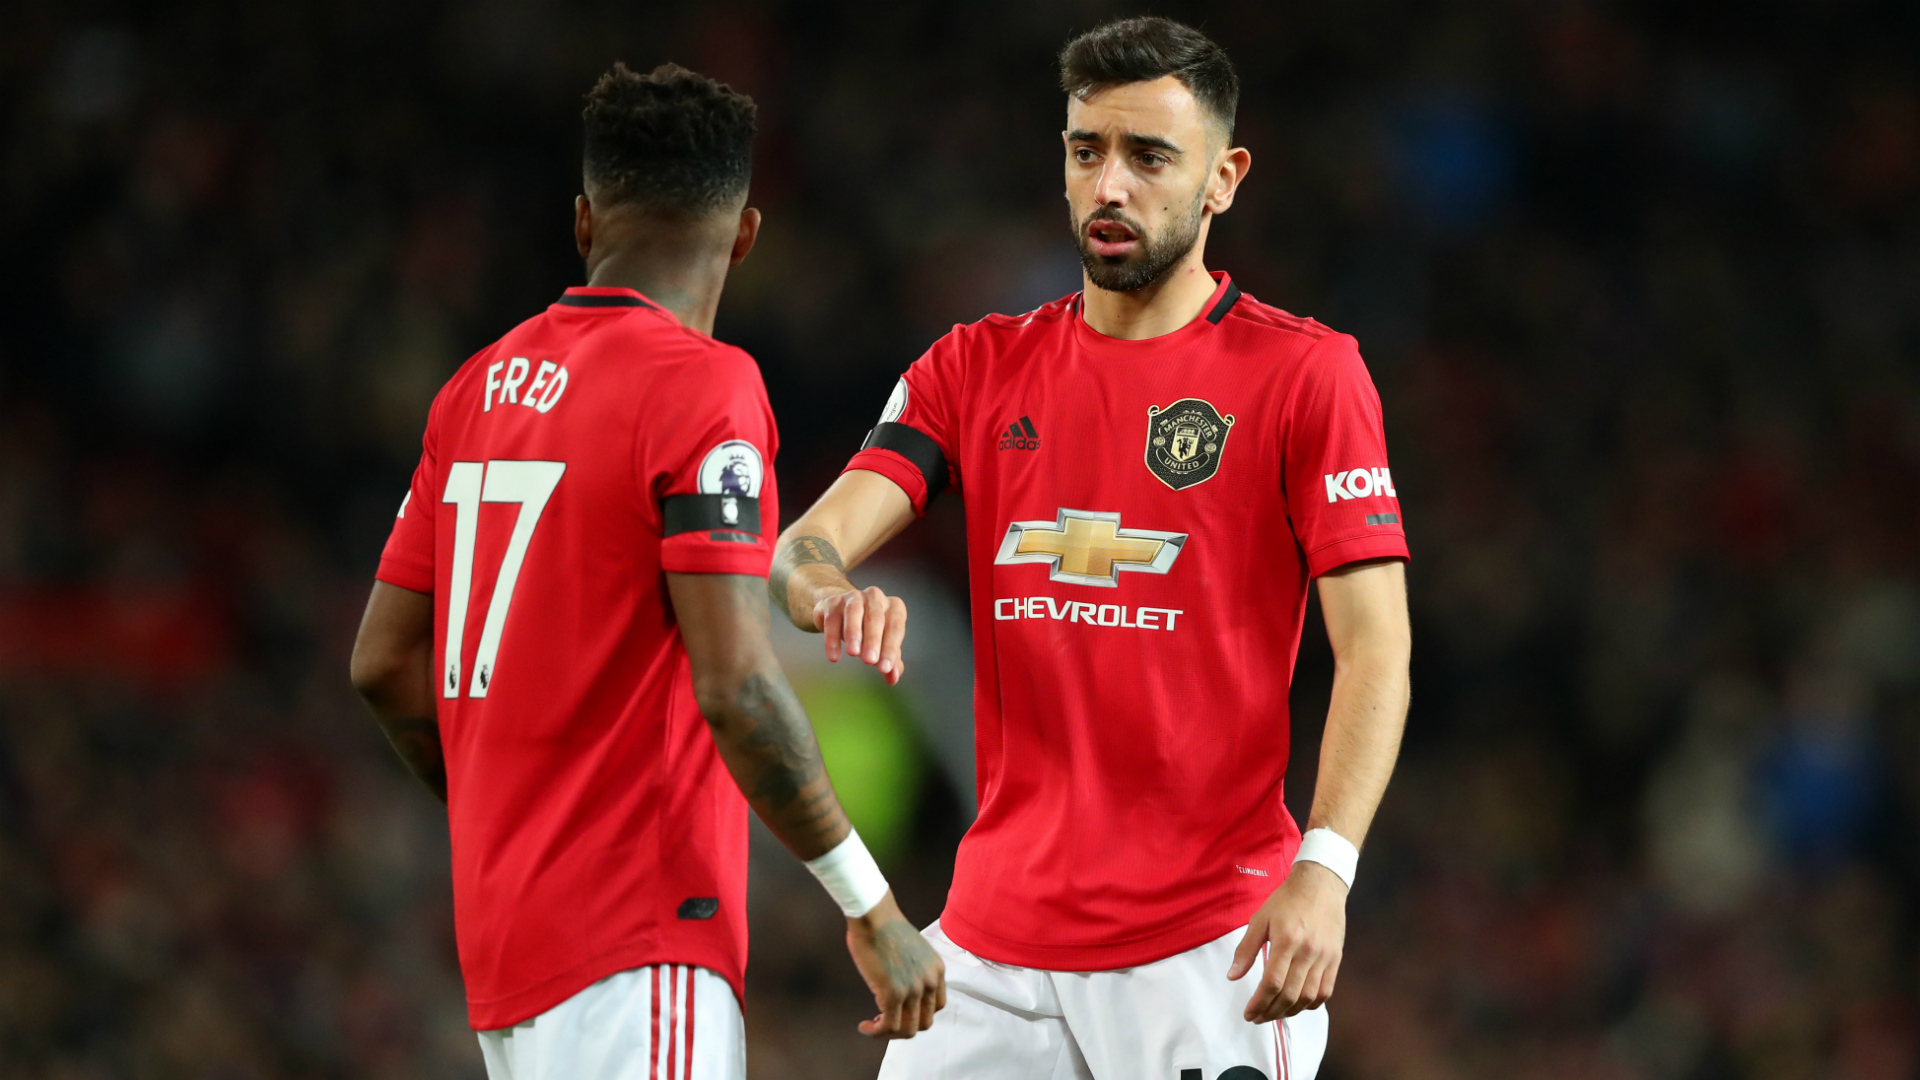 Neville impressed by Bruno Fernandes' Man Utd debut despite Veron concerns